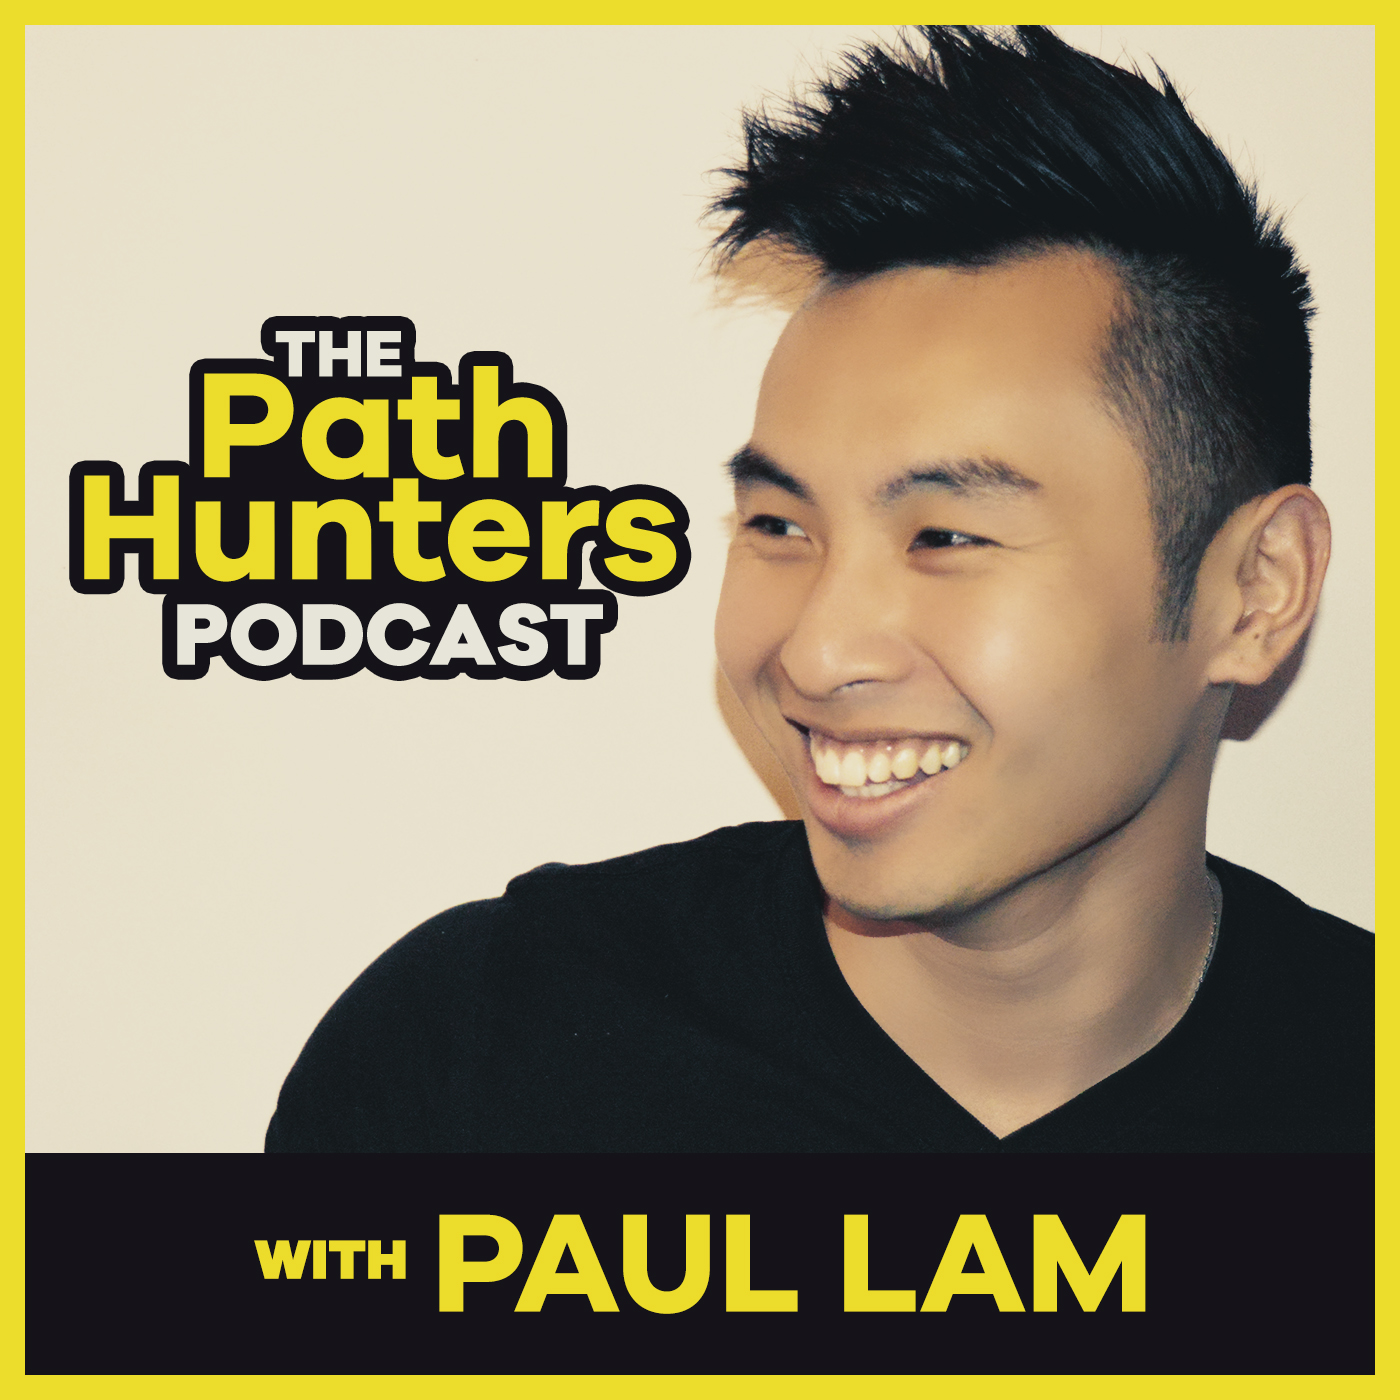 The Path Hunters Podcast